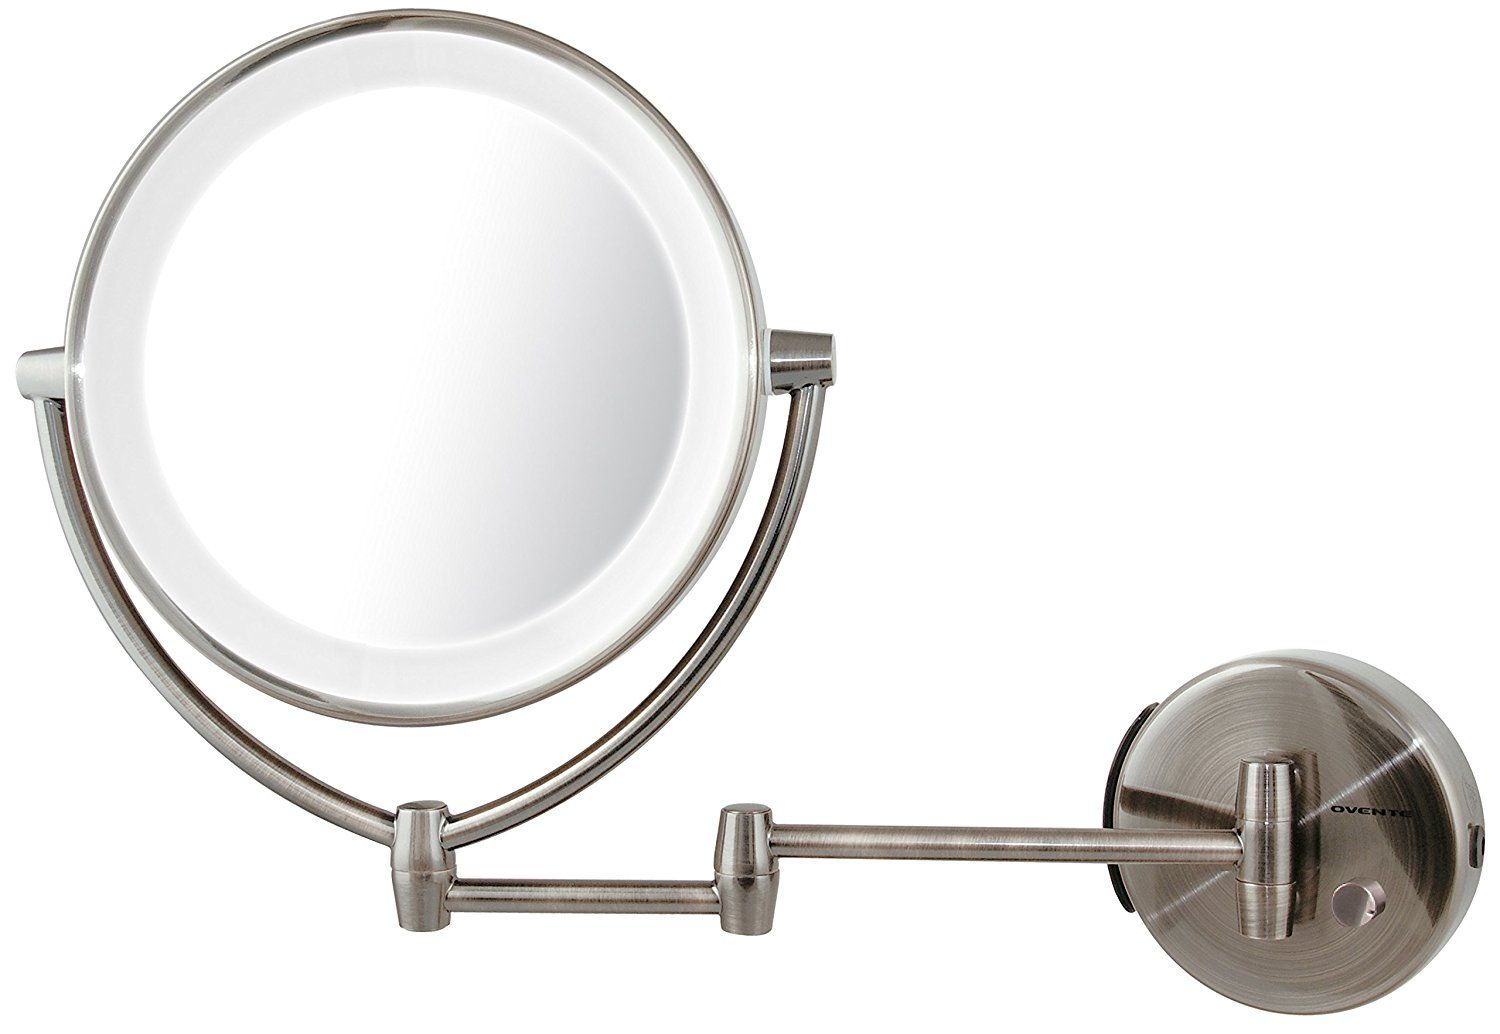 Ovente led lighted wall mount makeup mirror 1x10x magnification ovente led lighted wall mount makeup mirror 1x10x magnification 95 inch nickel brushed you can get more details by clicking on the image mozeypictures Images